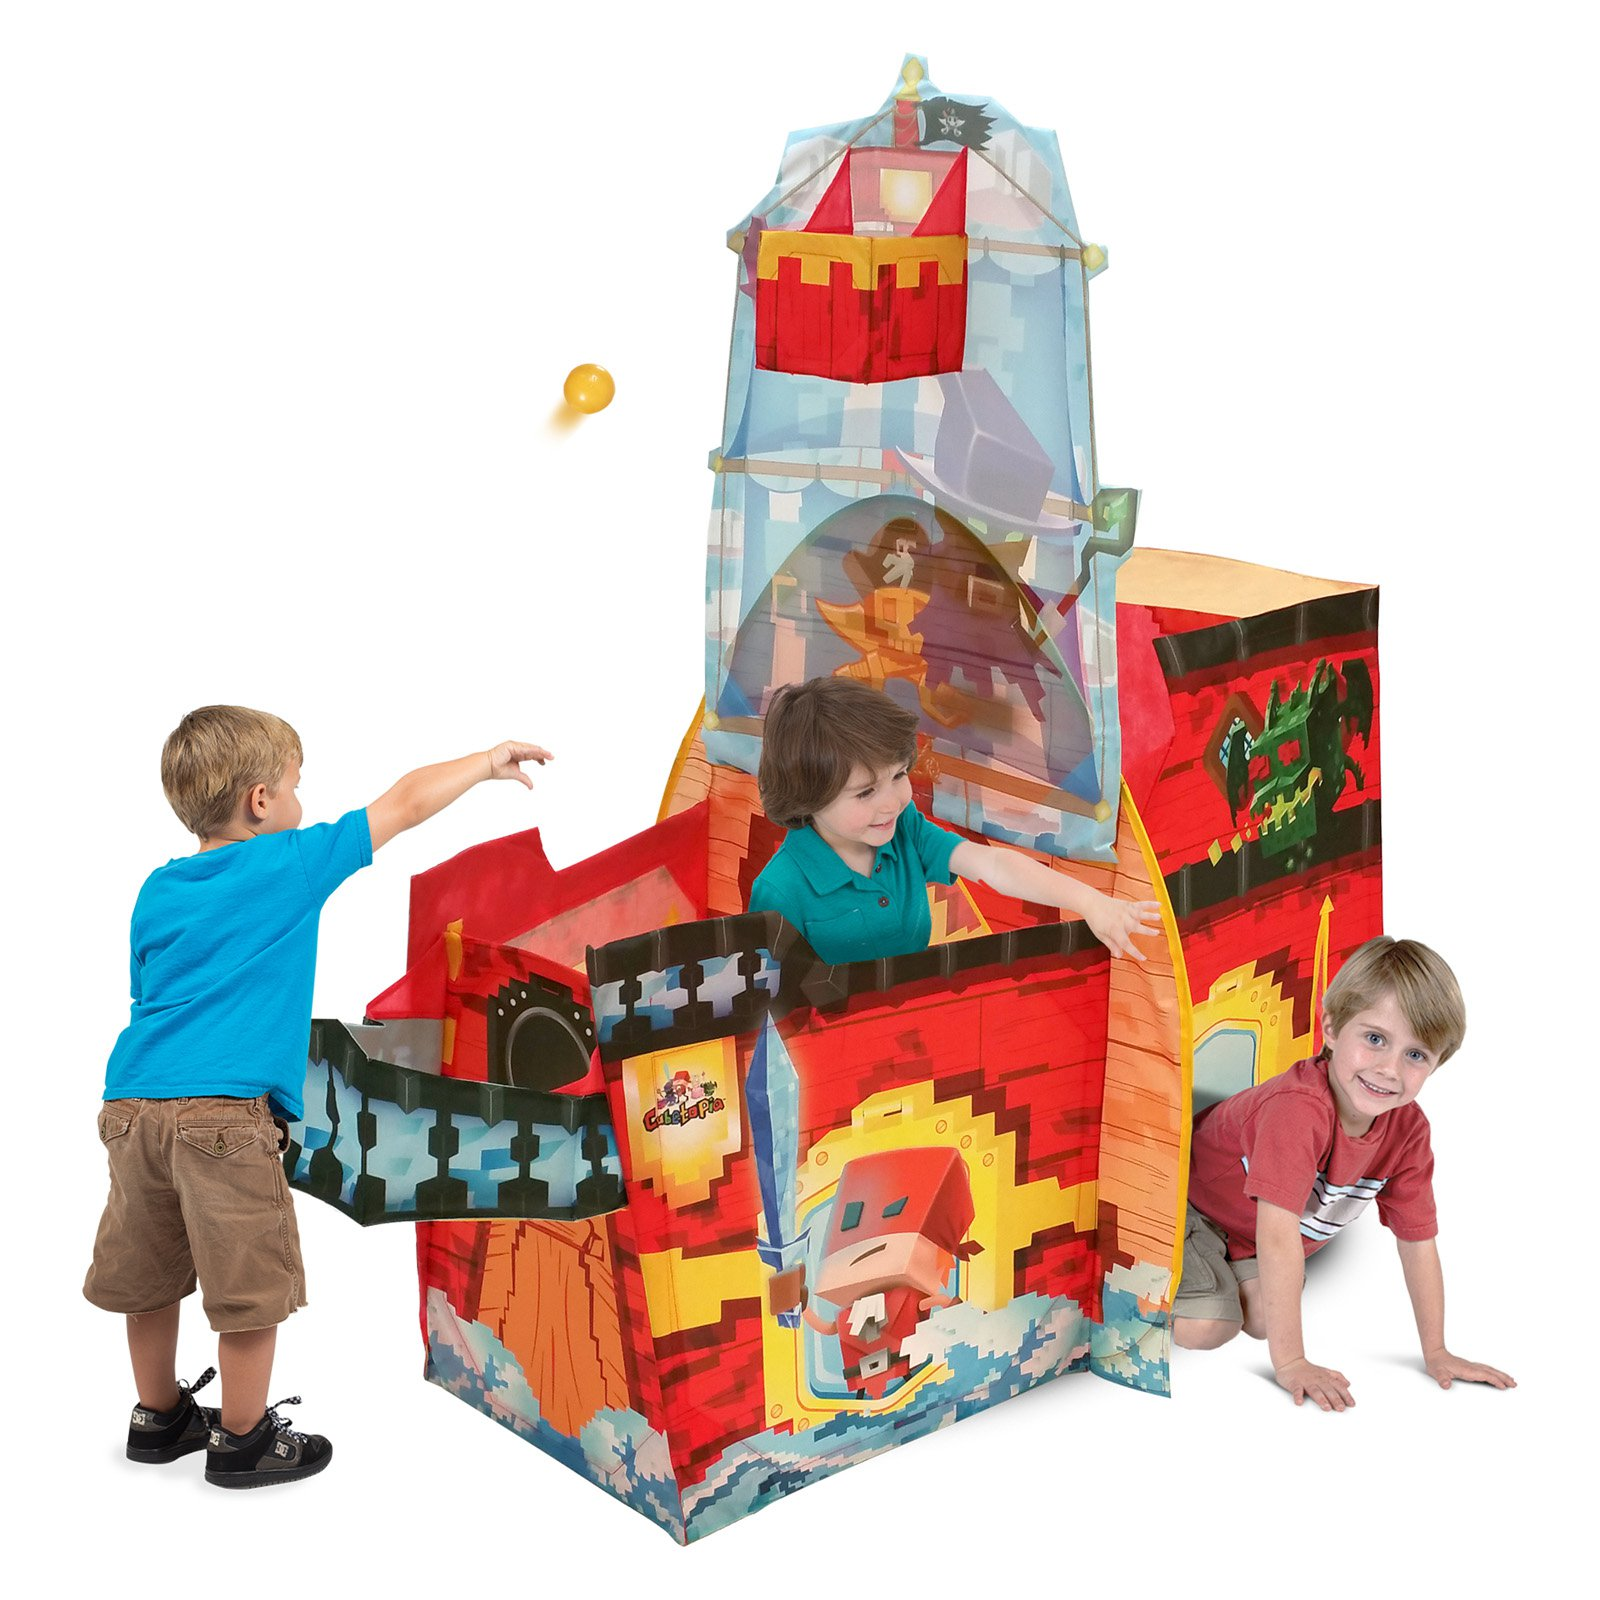 Playhut Cubetopia Pirate Ship Play Tent